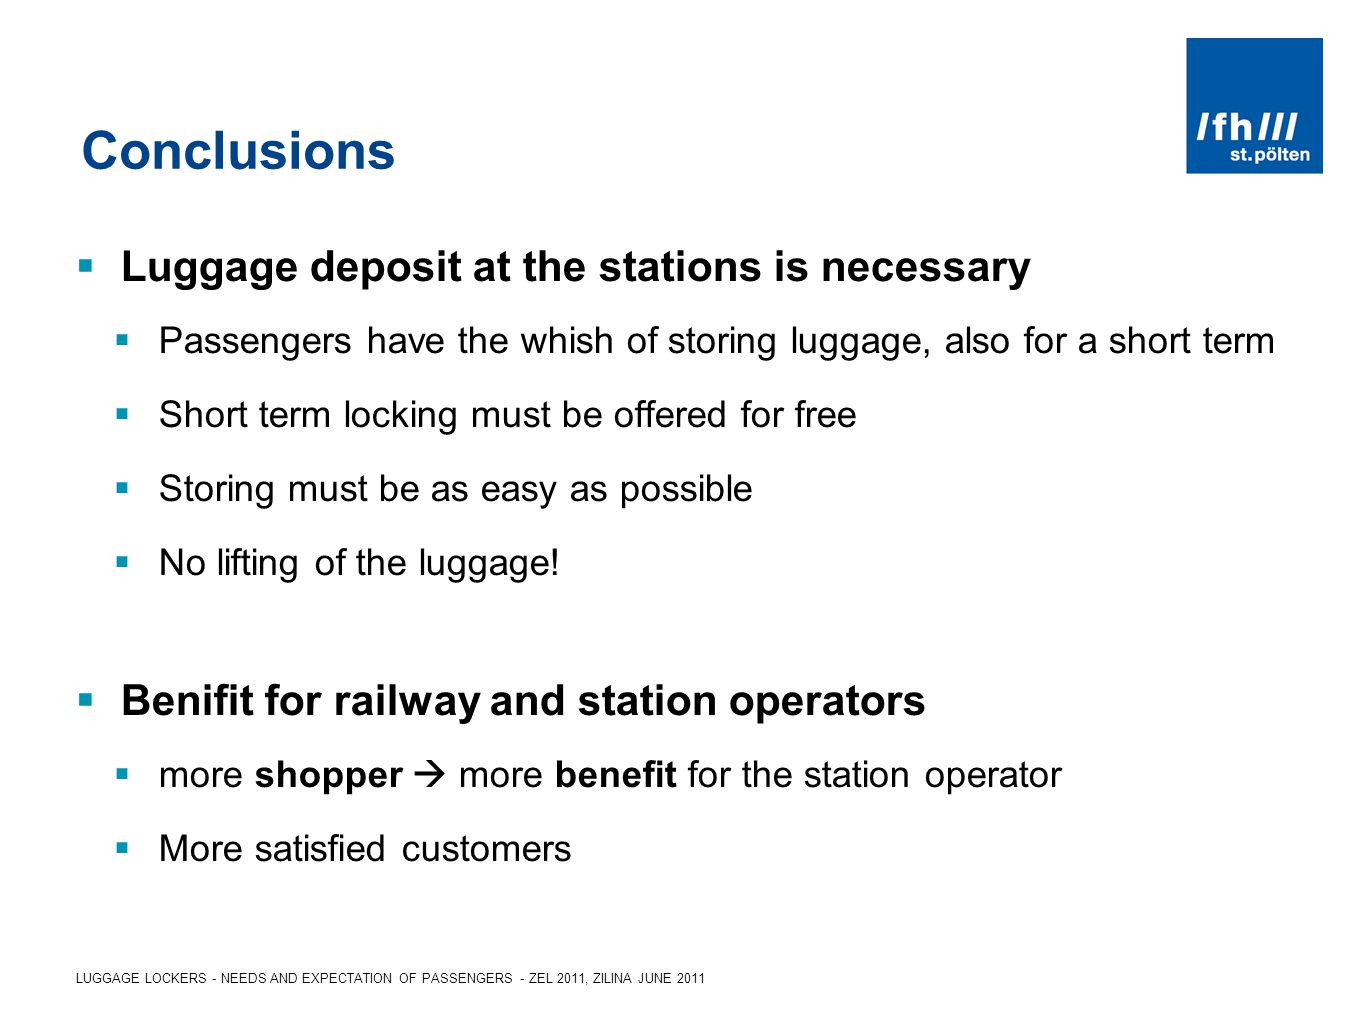 LUGGAGE LOCKERS - NEEDS AND EXPECTATION OF PASSENGERS - ZEL 2011, ZILINA JUNE 2011 Conclusions Luggage deposit at the stations is necessary Passengers have the whish of storing luggage, also for a short term Short term locking must be offered for free Storing must be as easy as possible No lifting of the luggage.